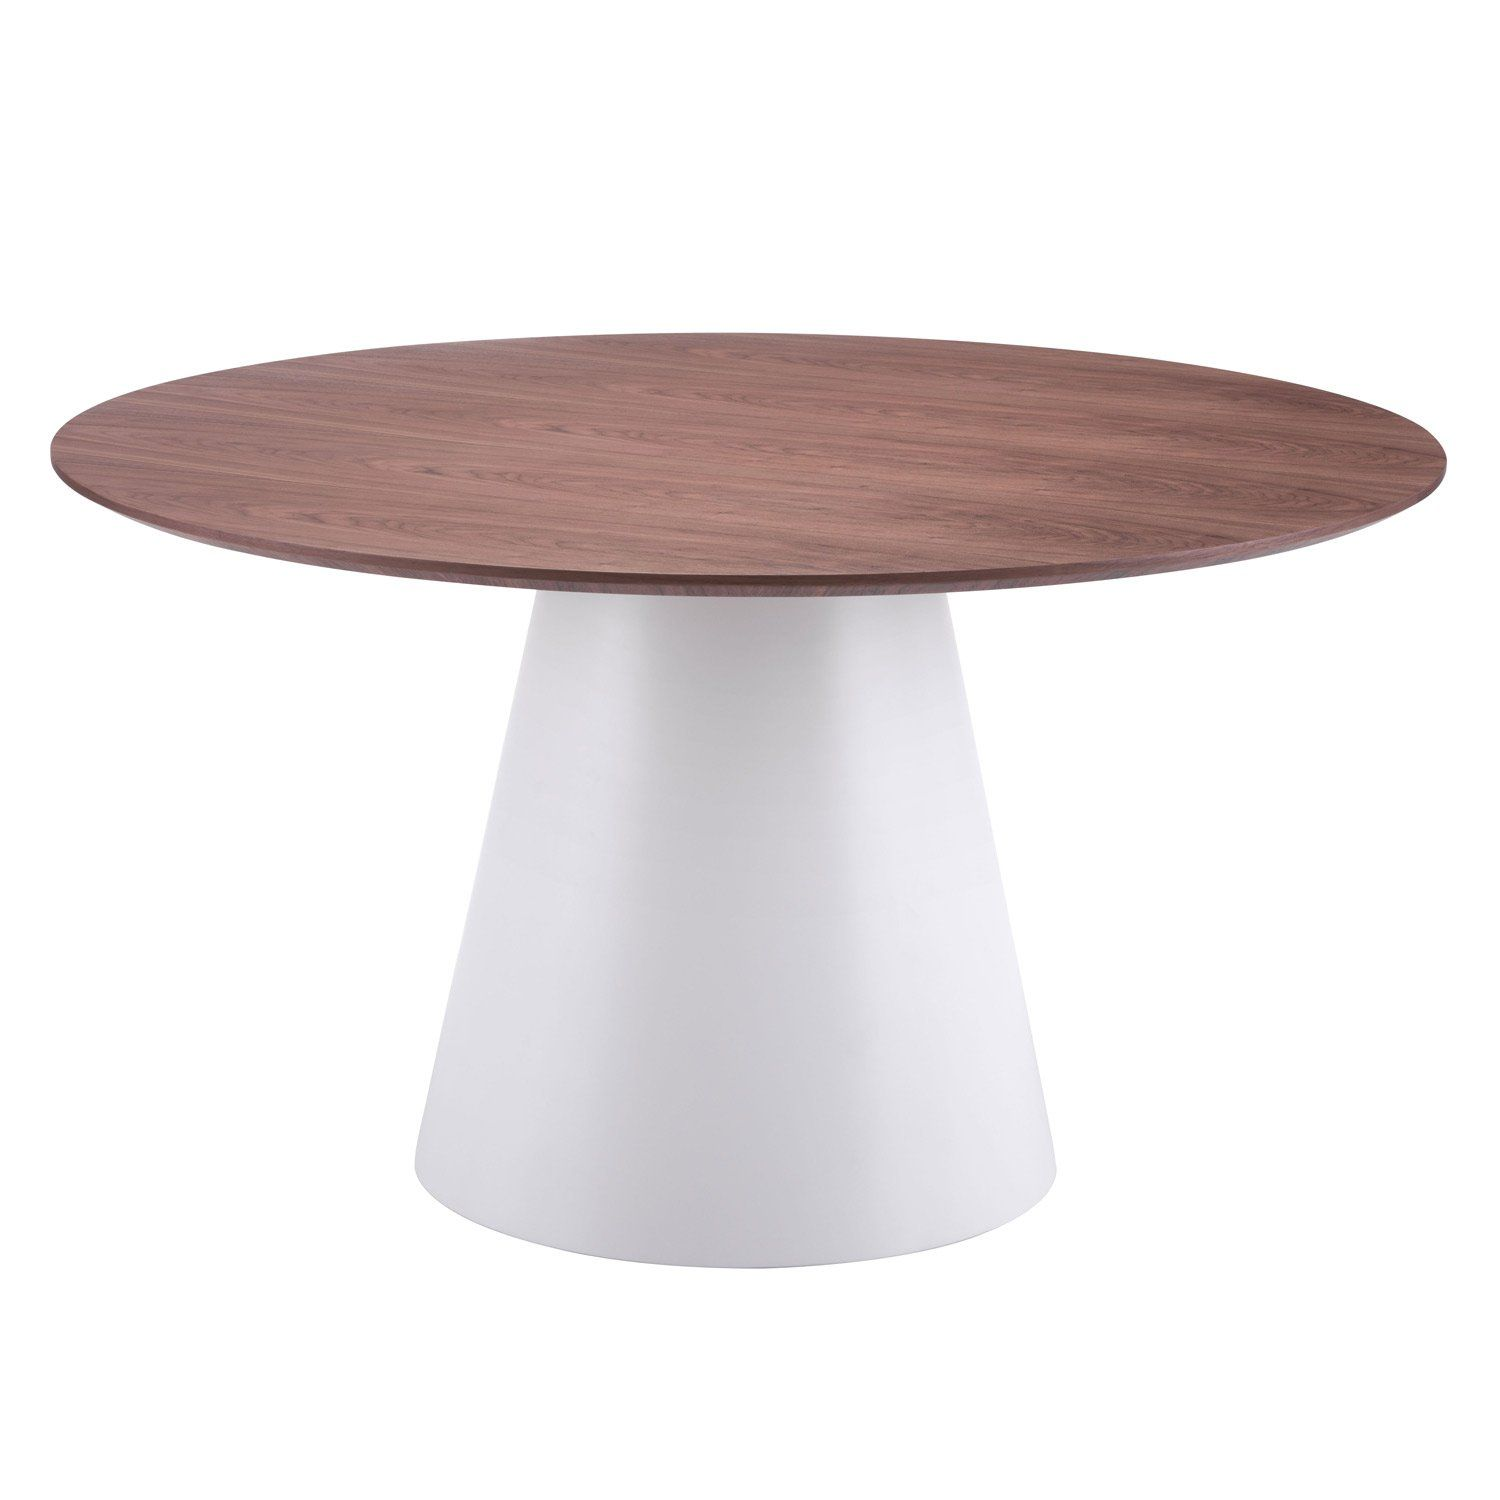 Painted round dining table  Carl Dining Table  Products  Pinterest  Dining Dining Table and